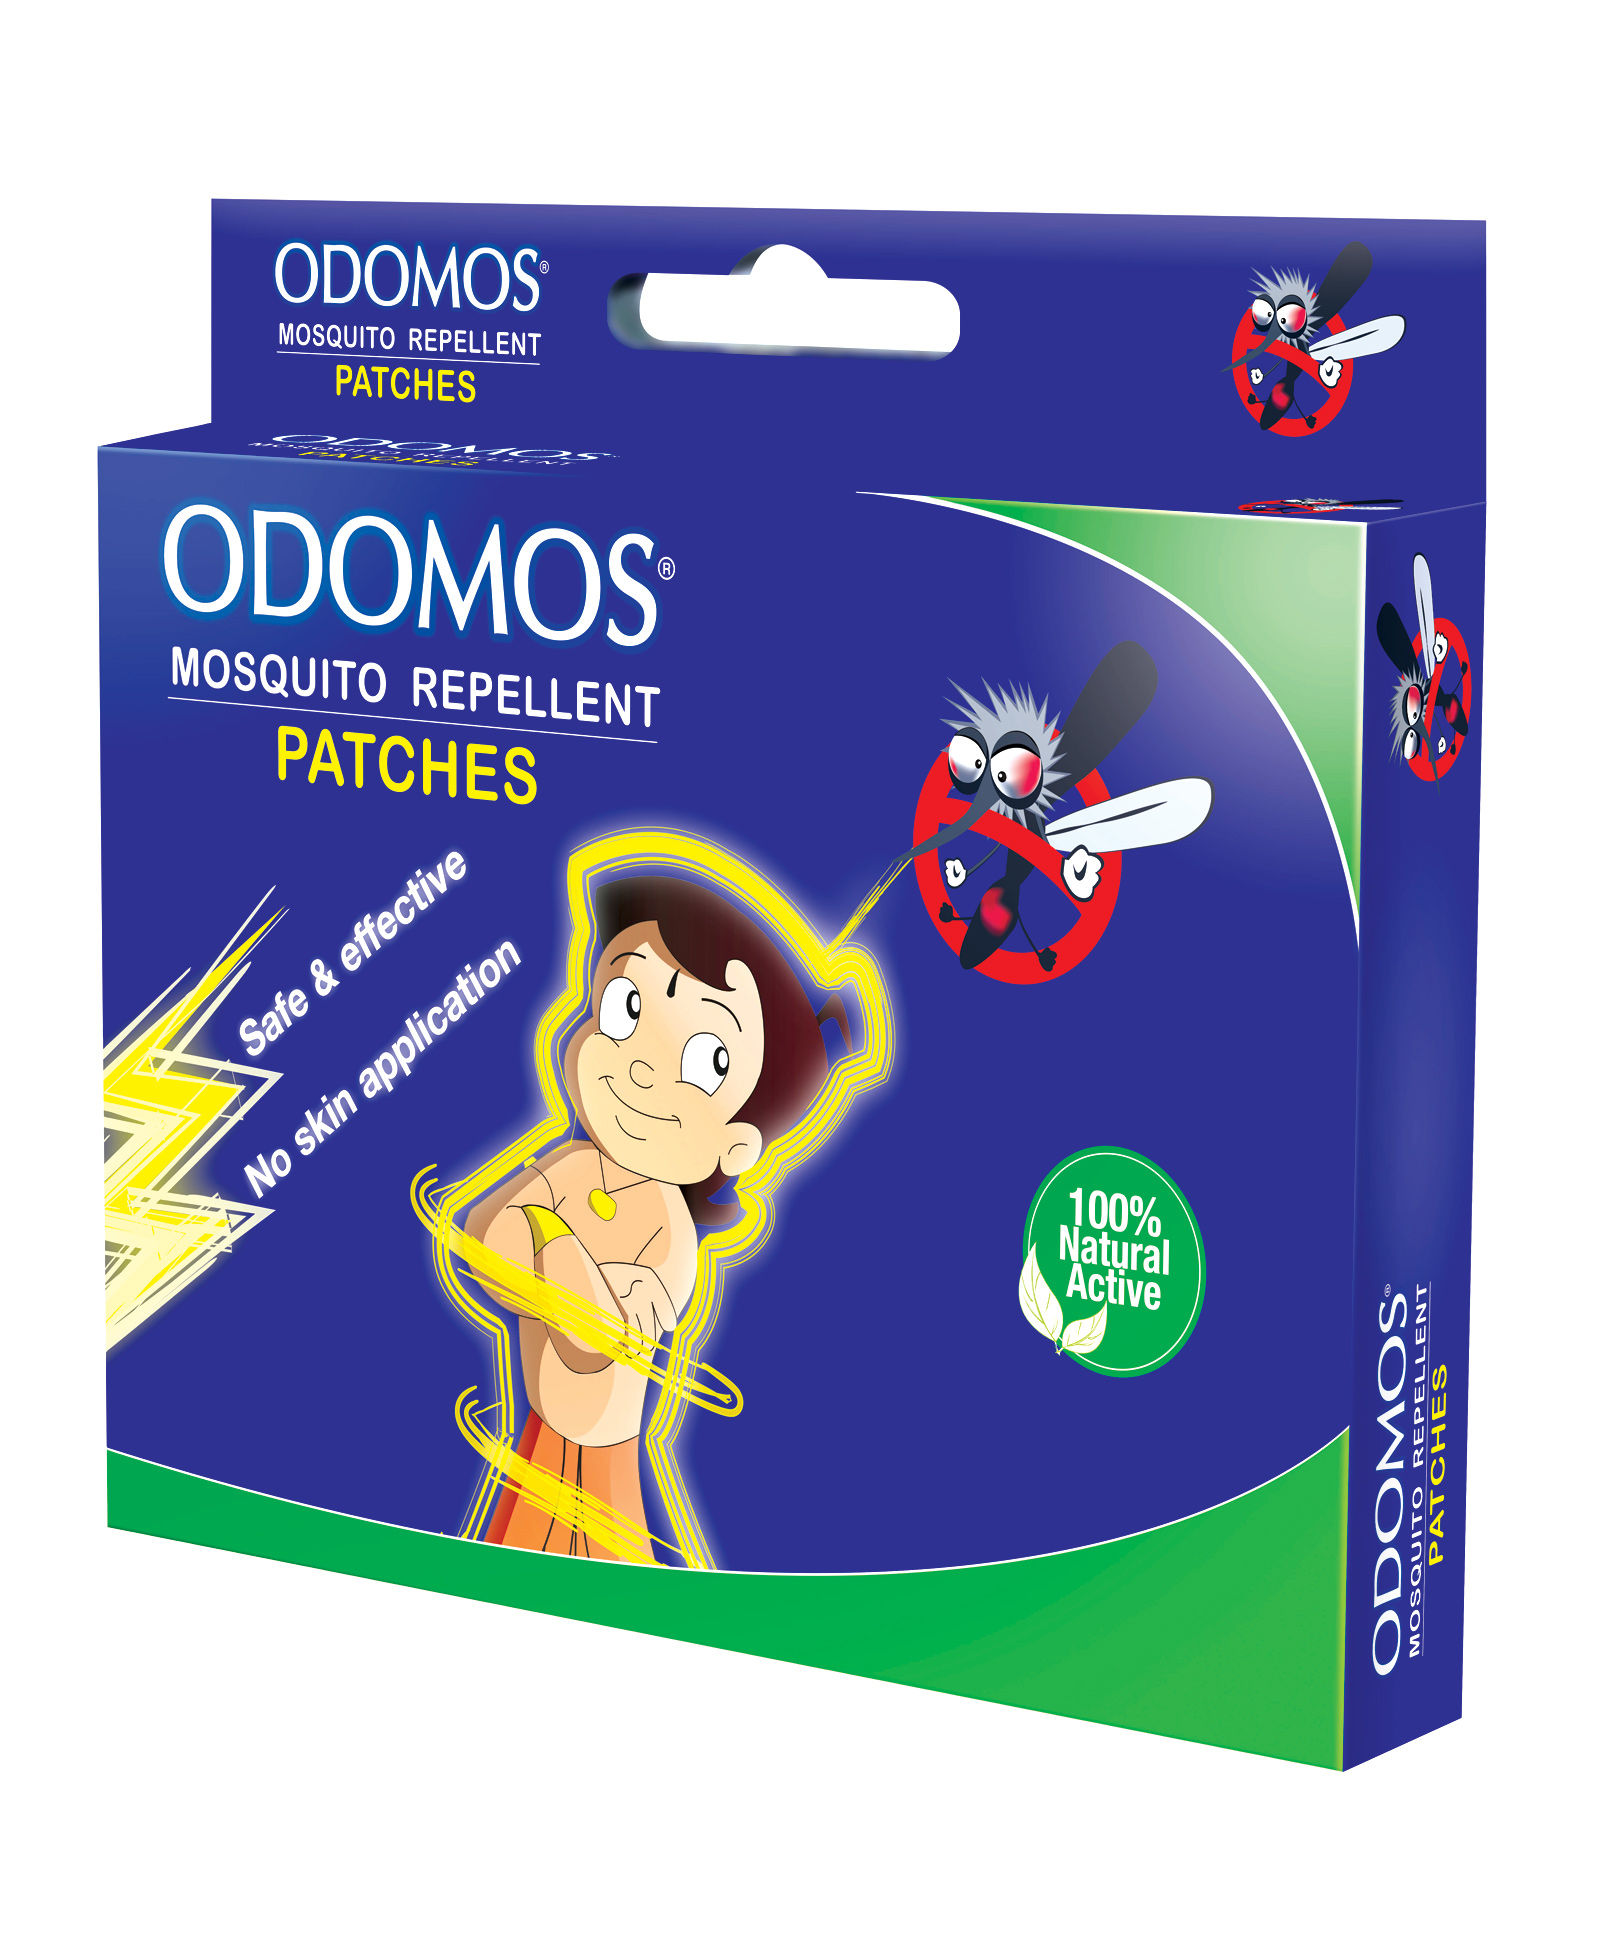 Buy Dabur Odomos Mosquito Repellent Patches Carton Box Online MY